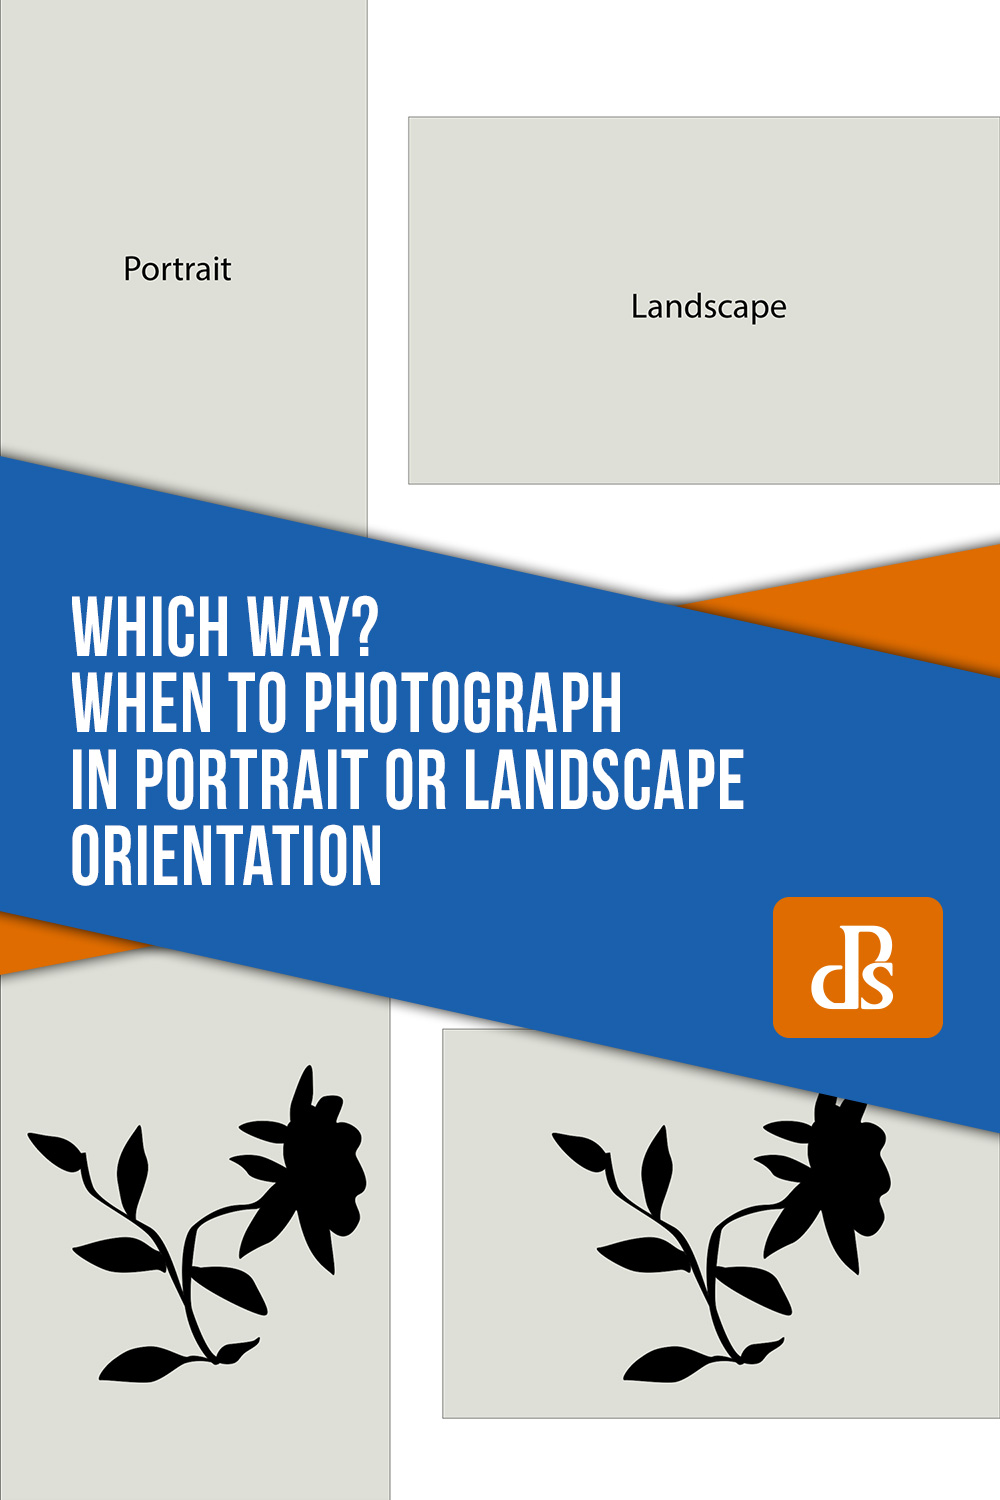 portrait-or-landscape-orientation